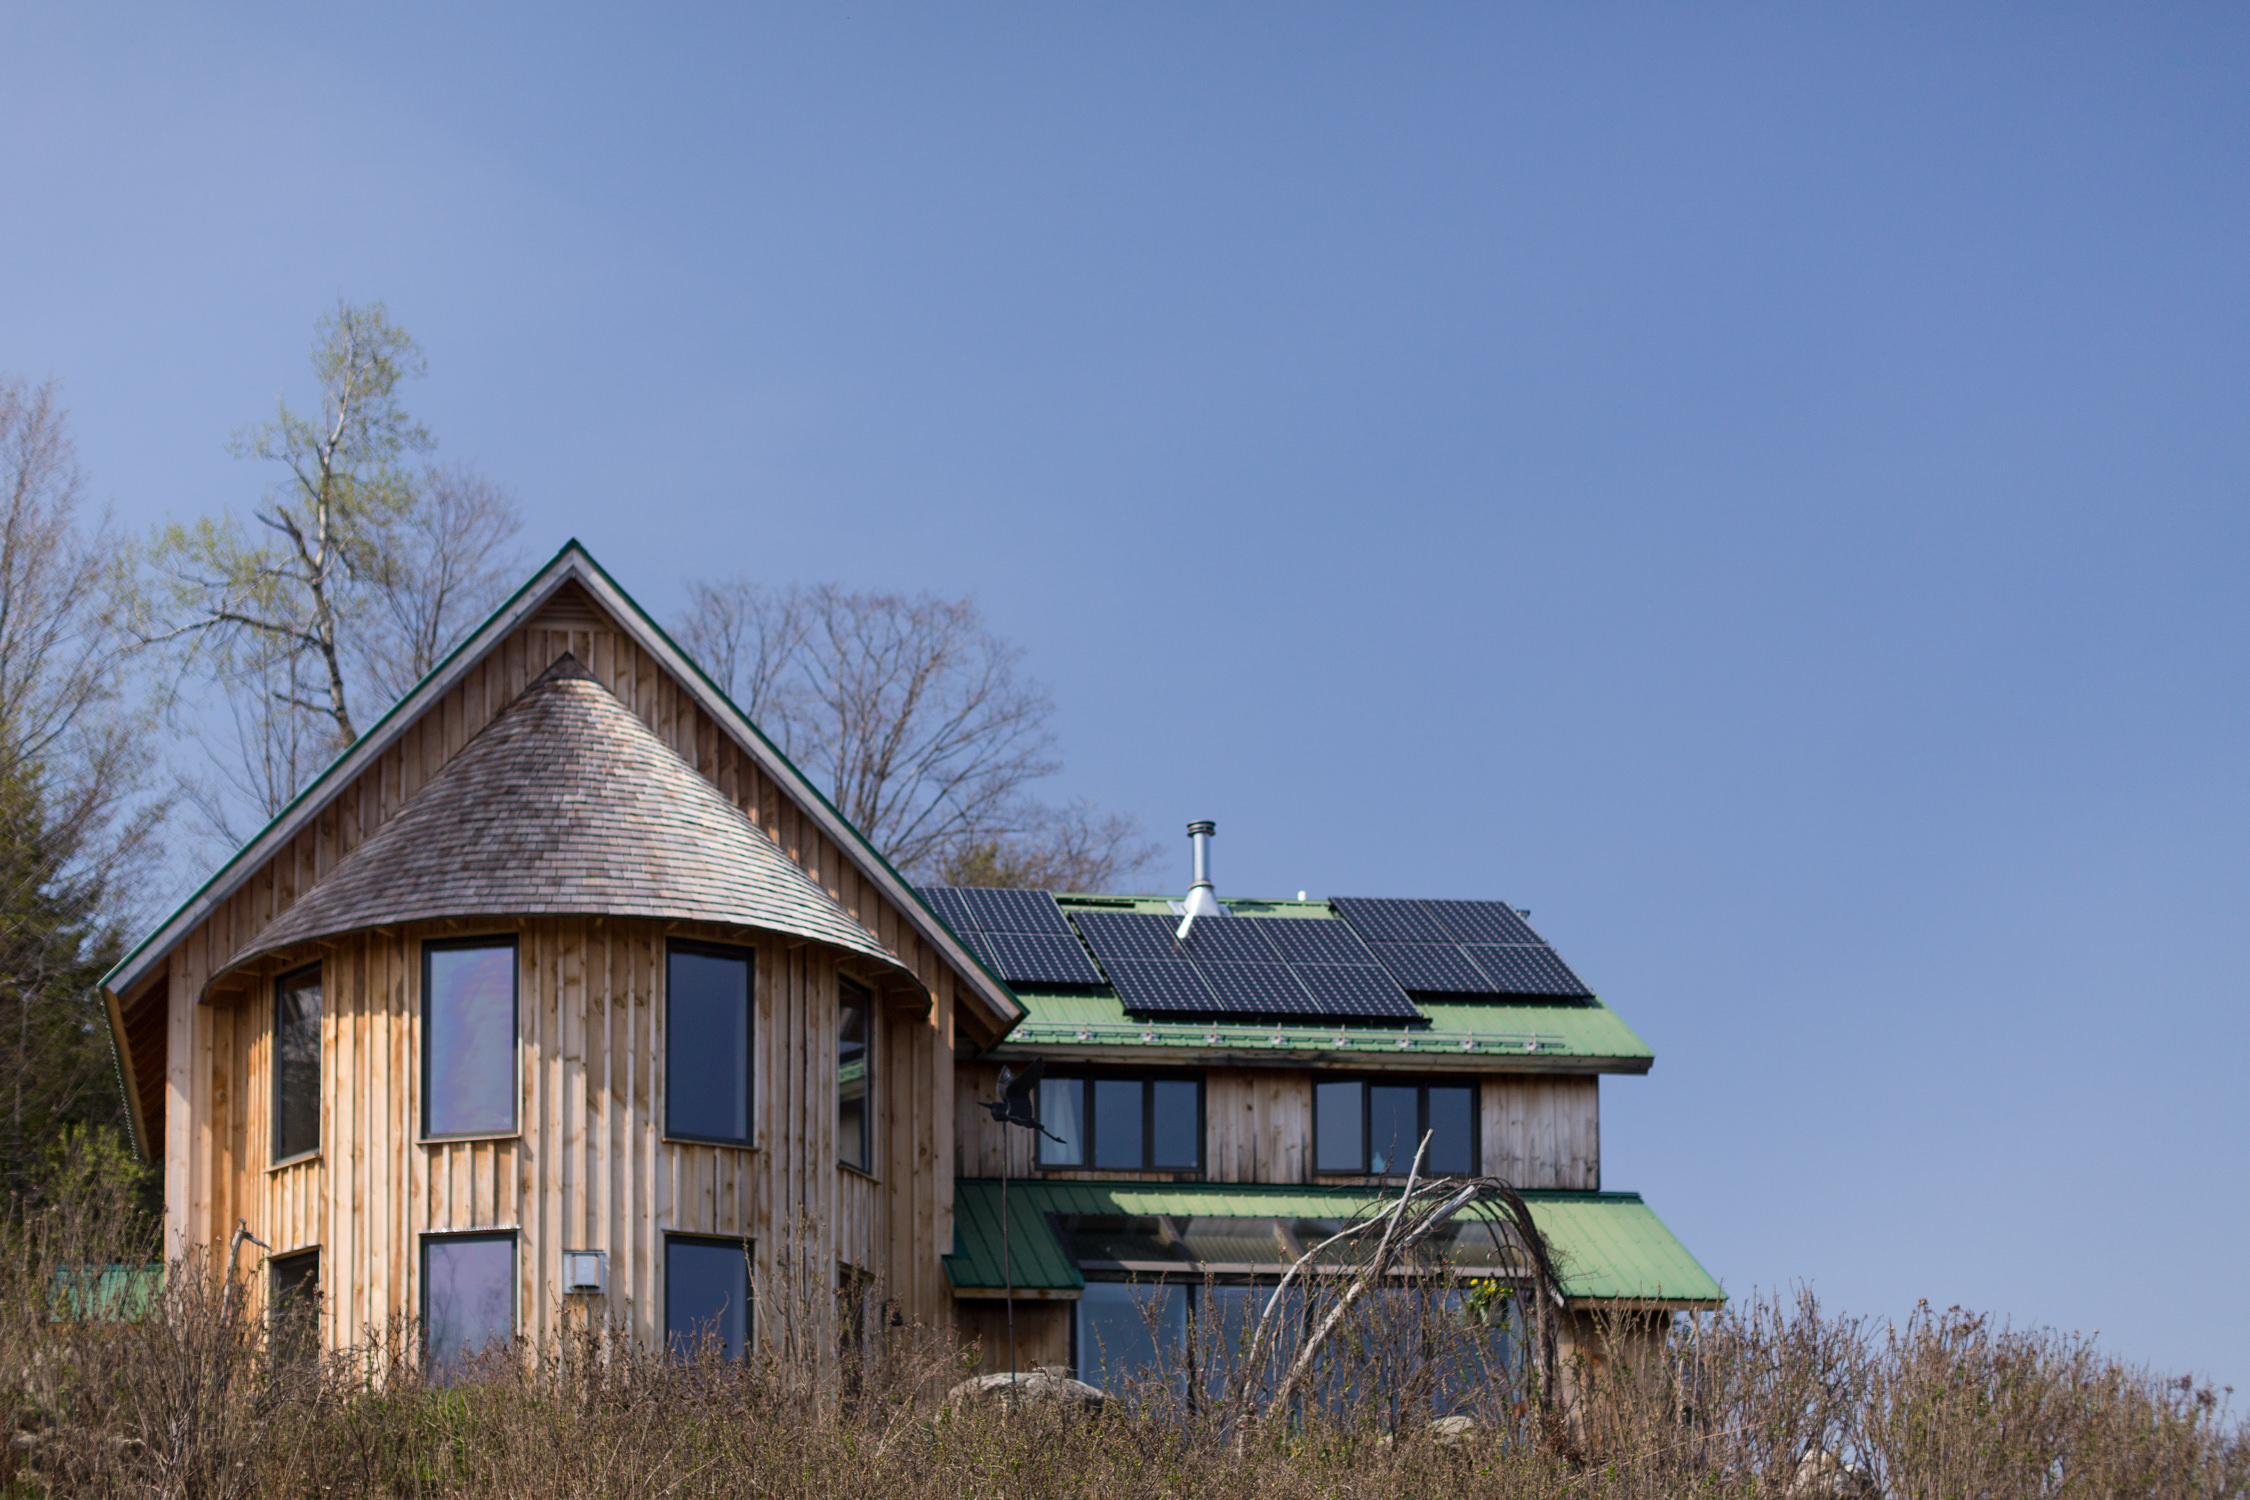 A view of the round straw cell kitchen addition of a Marshfield Vermont home by Stina Booth architecture photography